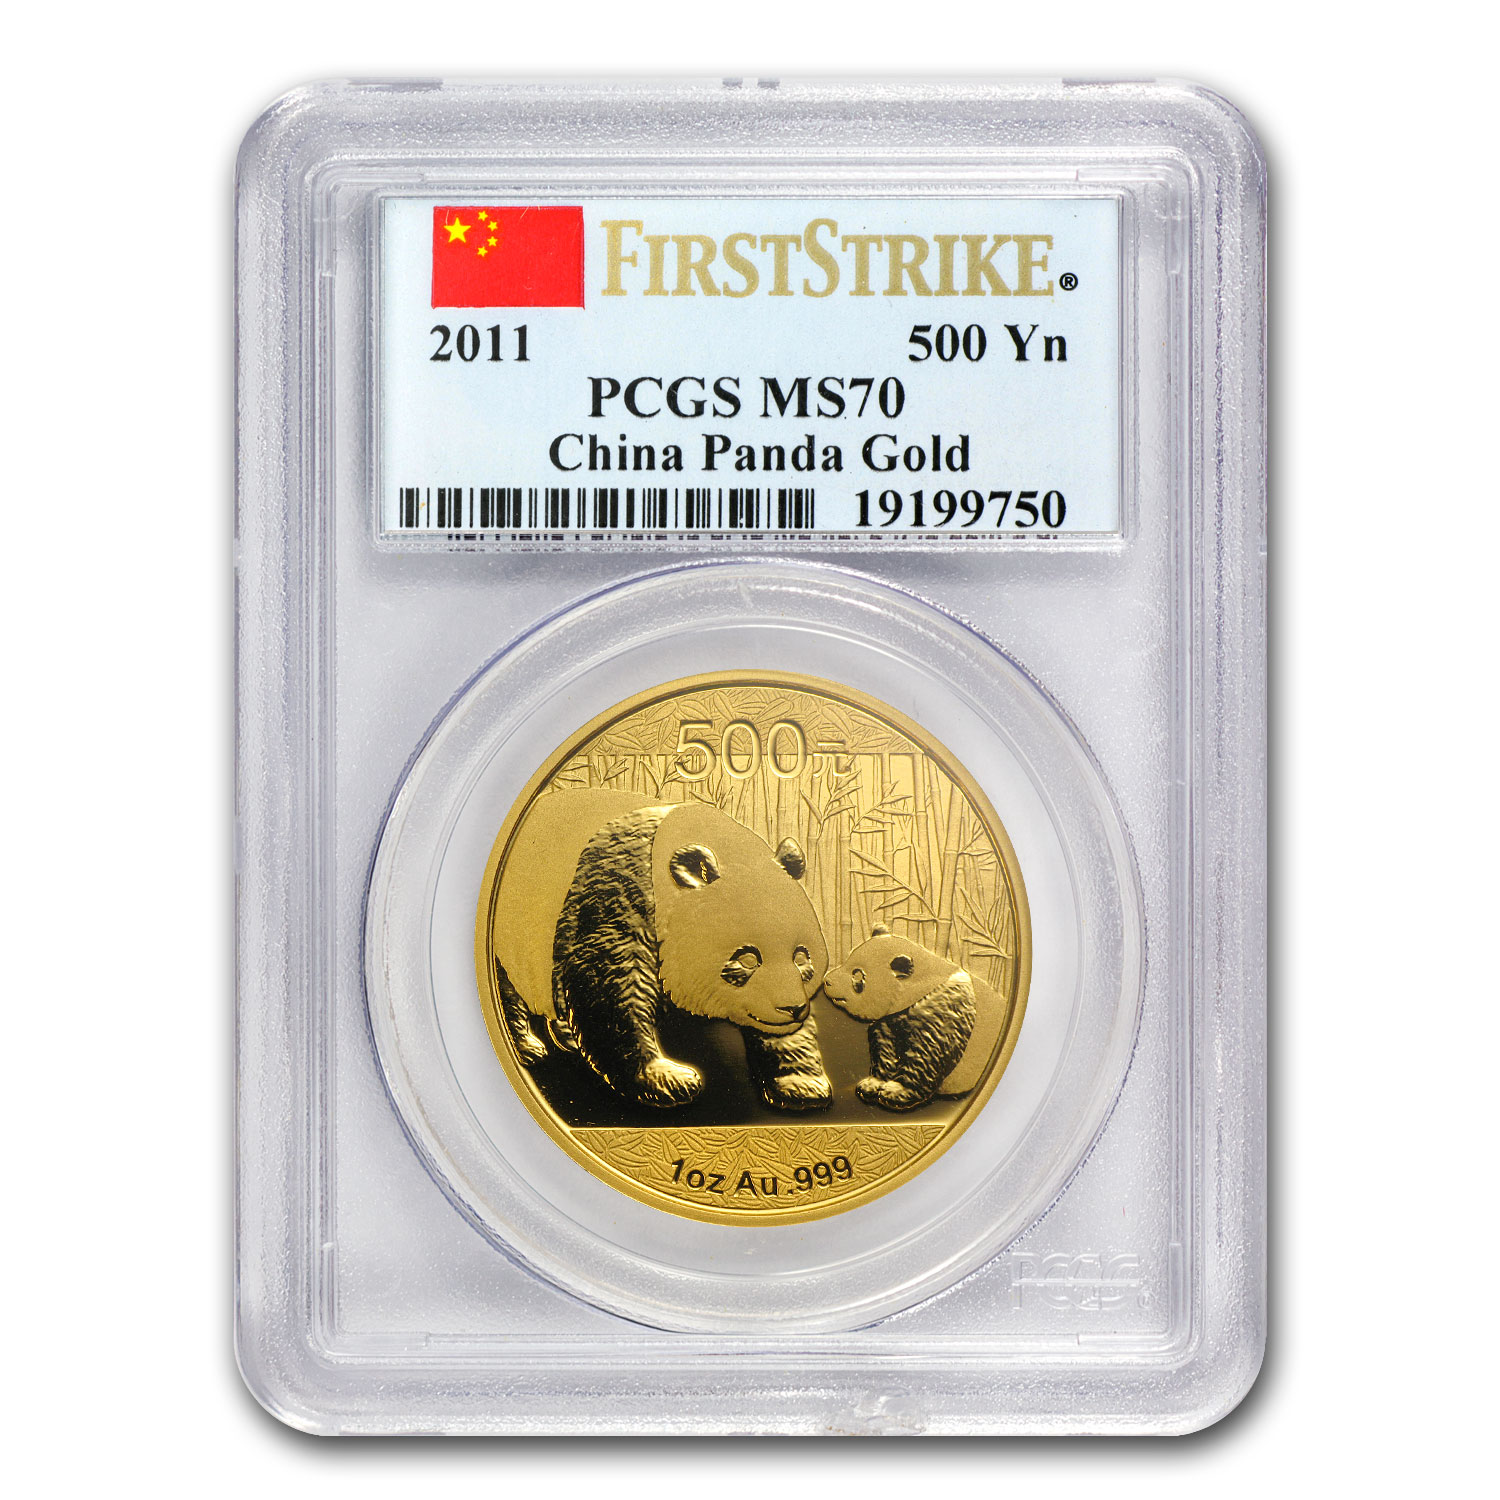 2011 1 oz Gold Chinese Panda MS-70 PCGS (FS)